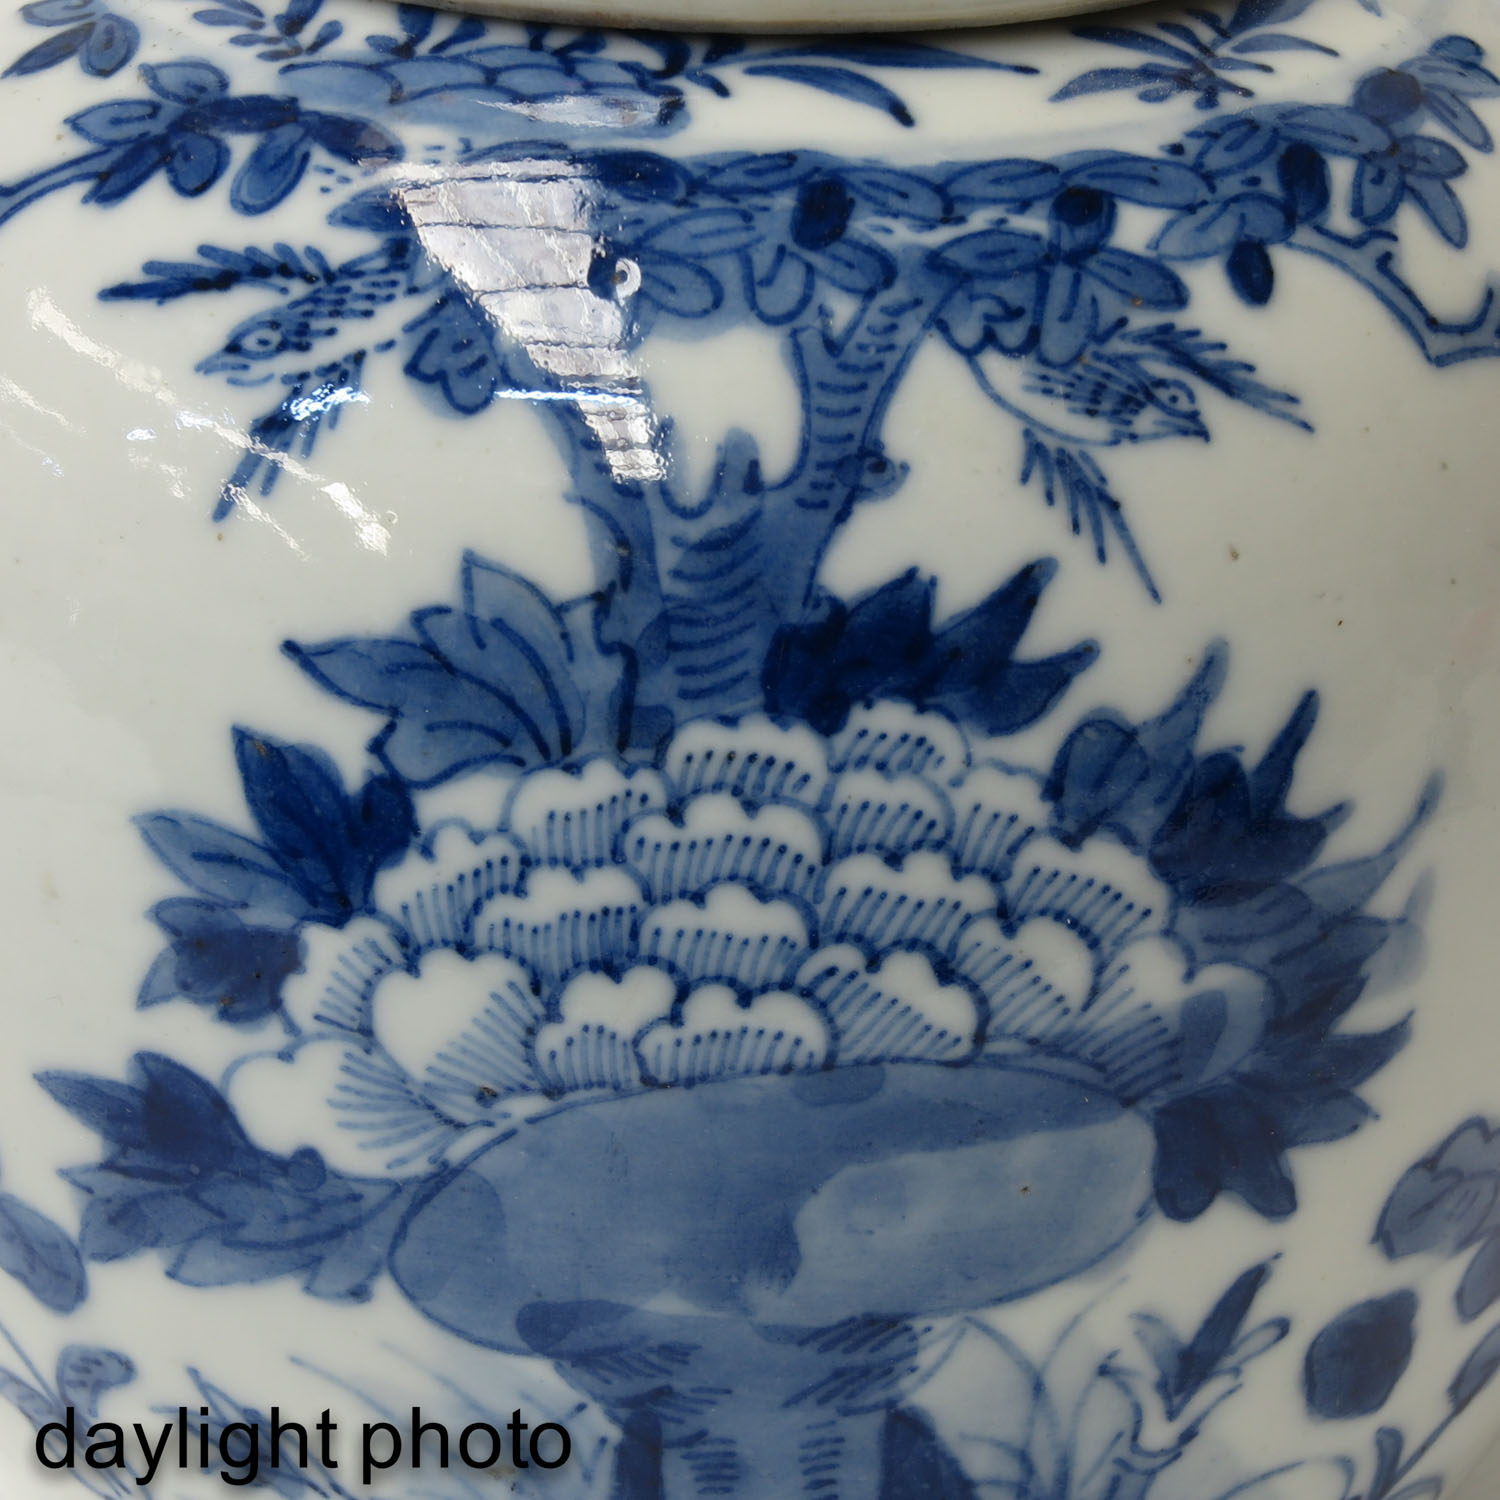 A Diverse Collection of Porcelain - Image 9 of 9